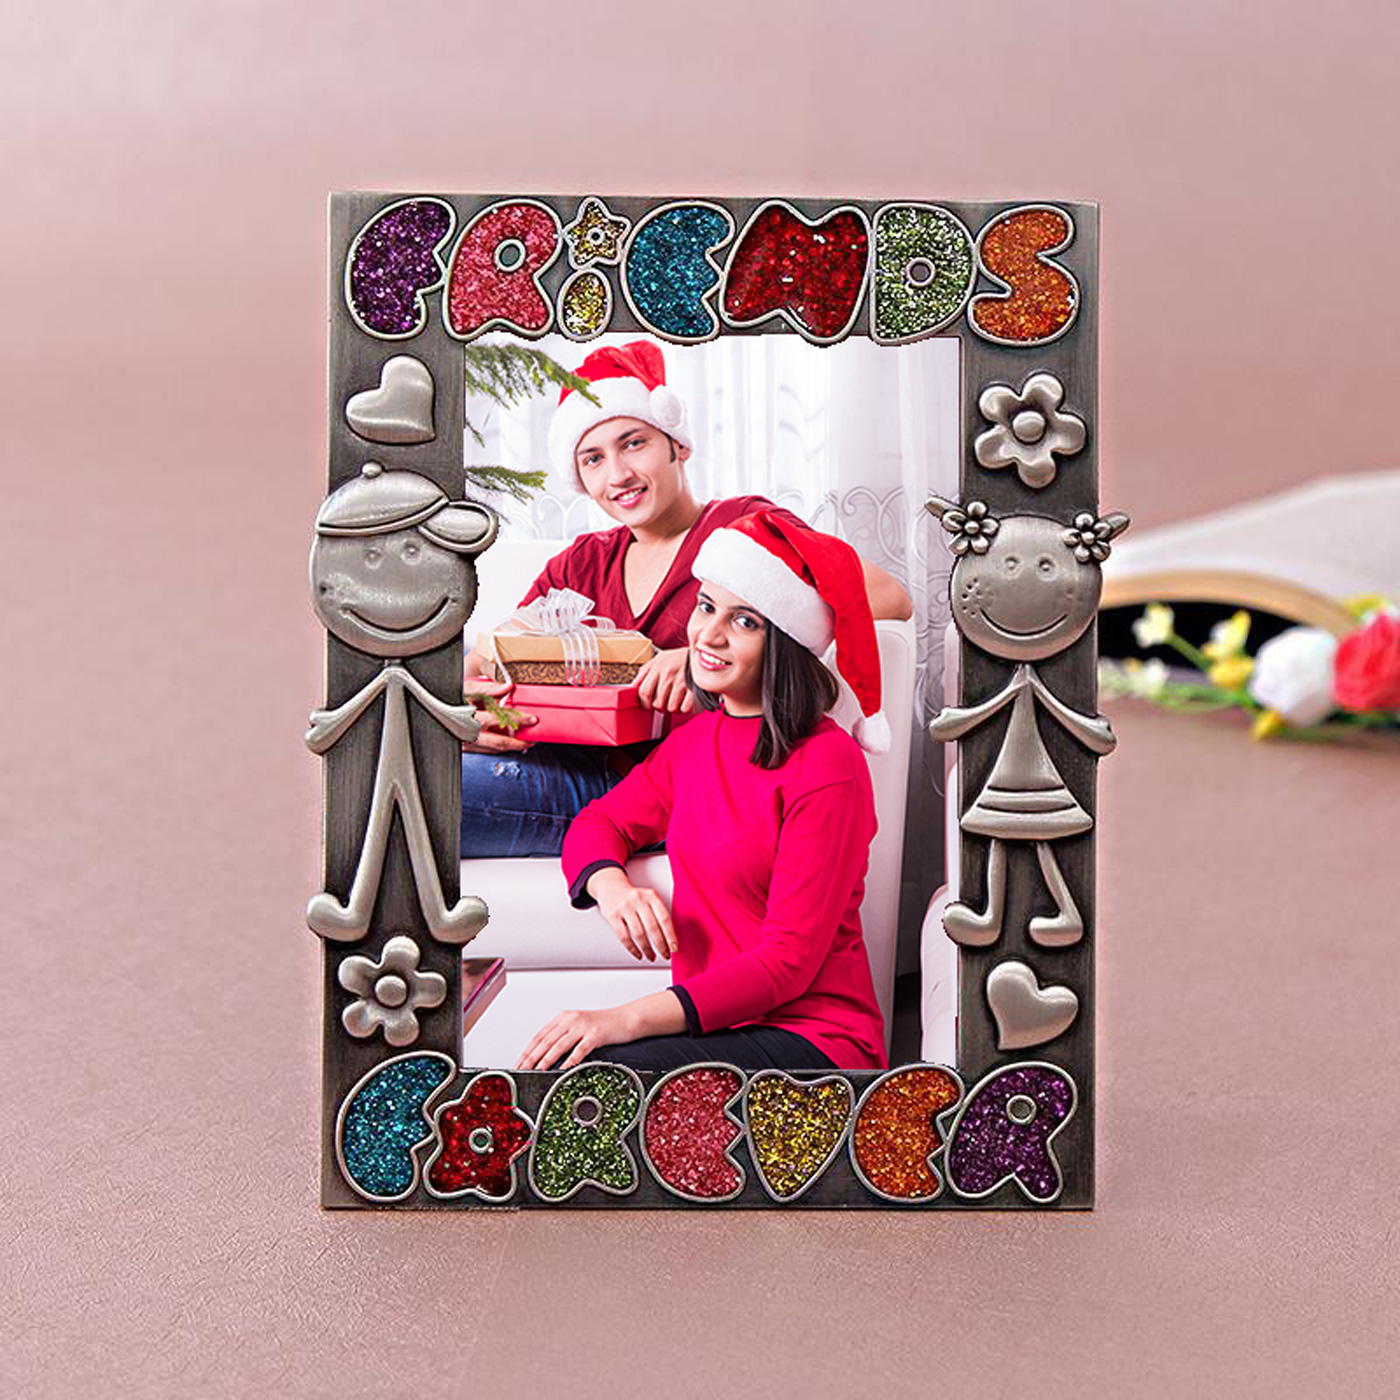 cute friendship personalized photo frame